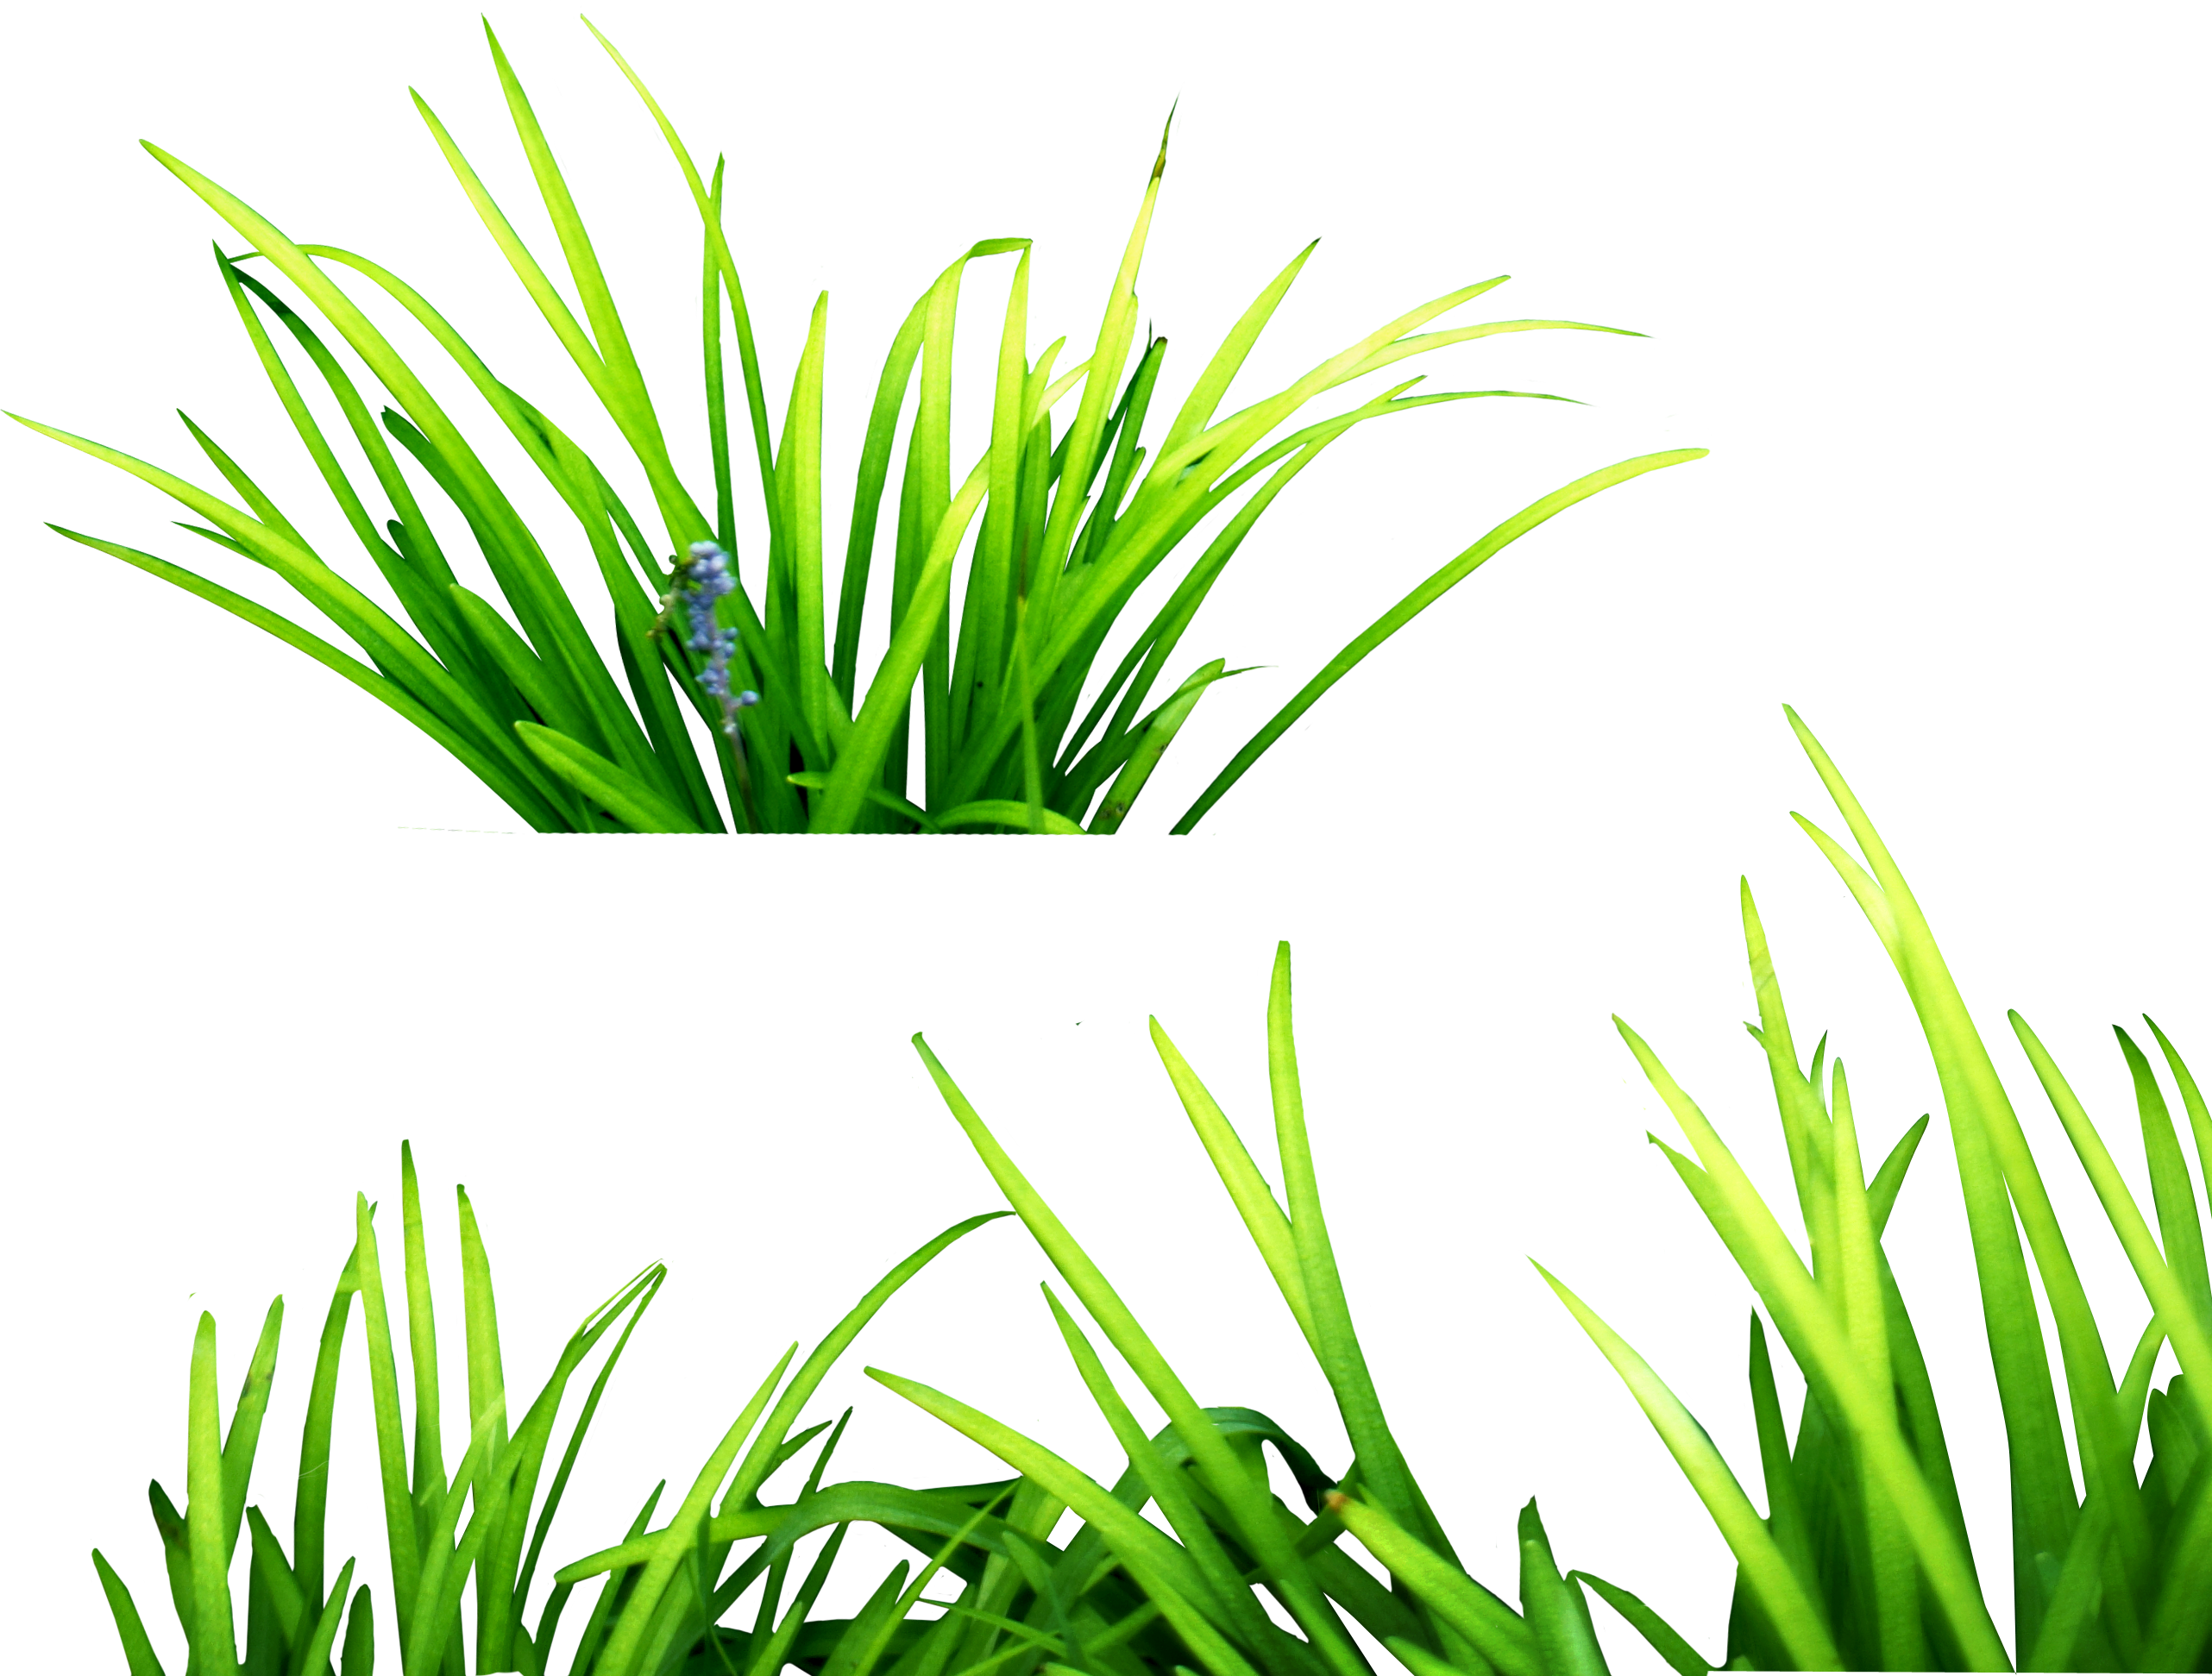 Dry Grass clipart #10